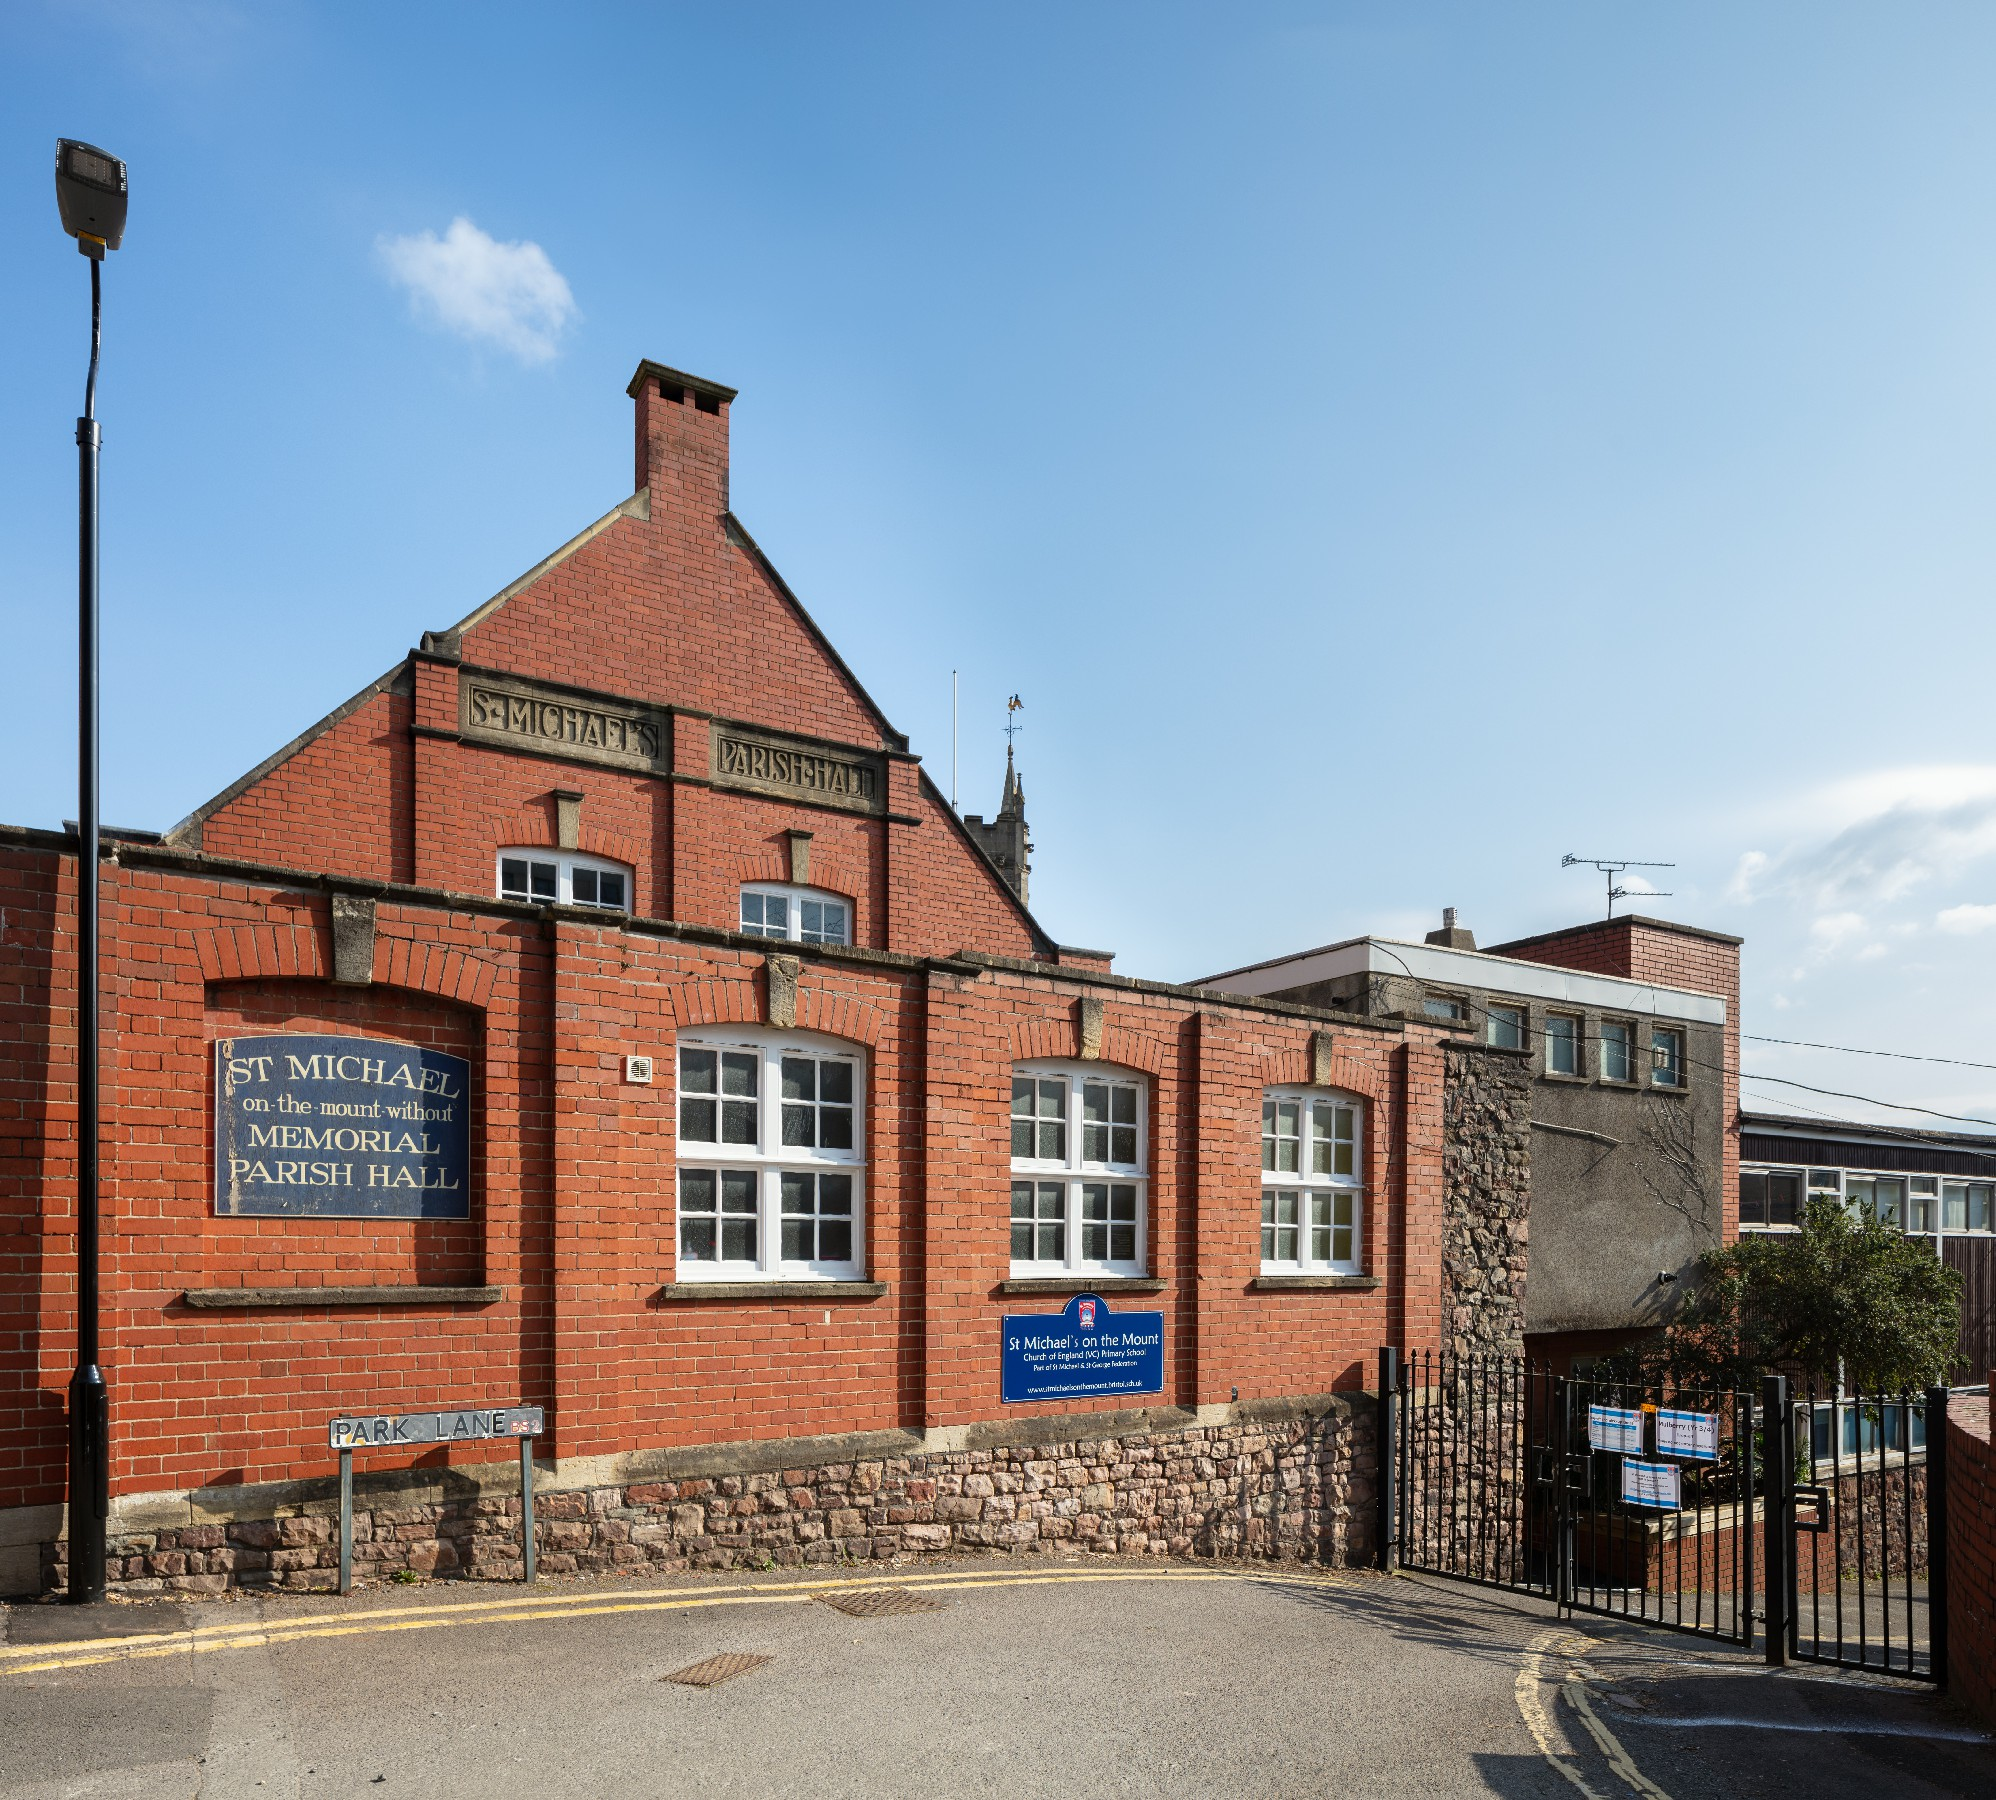 St Michael's Parish Hall is a community hall in the centre of Bristol, held by a charitable trust. The hall was established for the use of local residents.